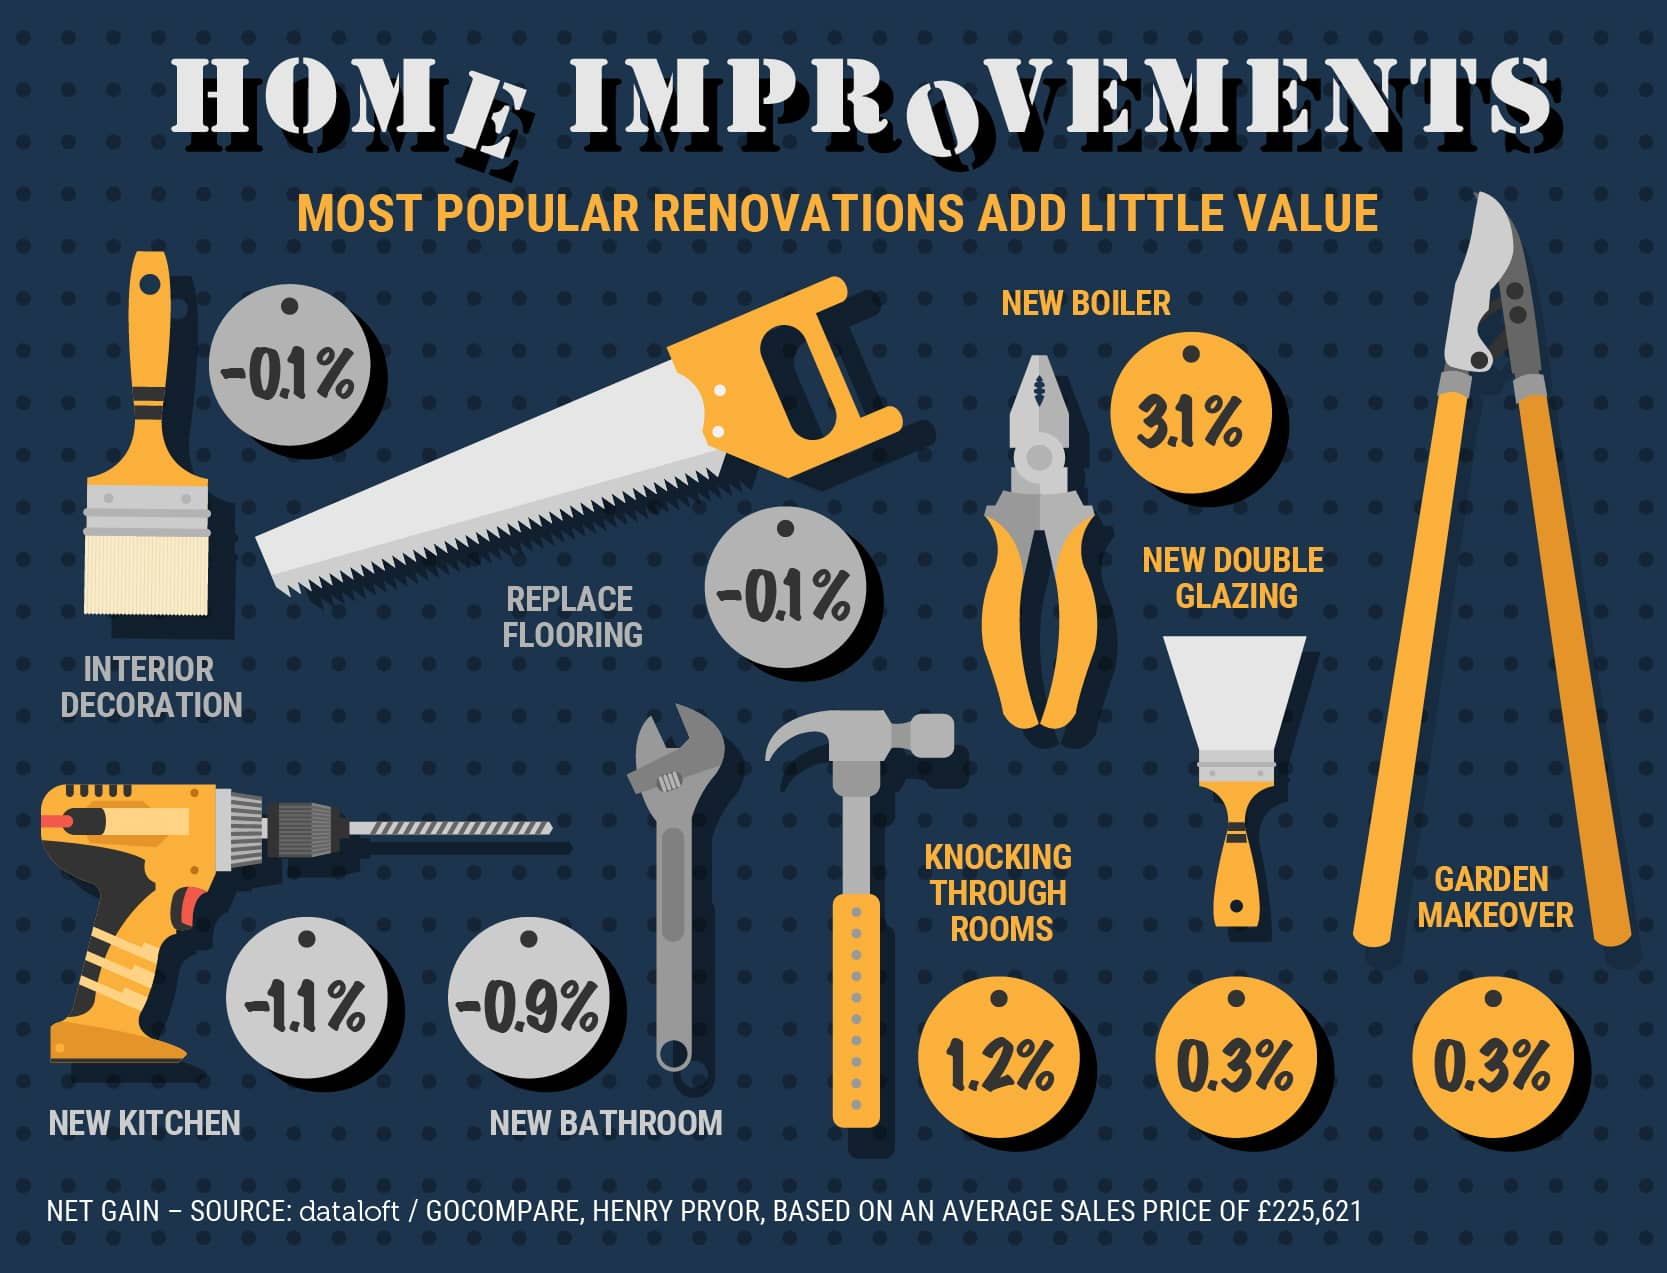 home improvements can cost more than the value they add